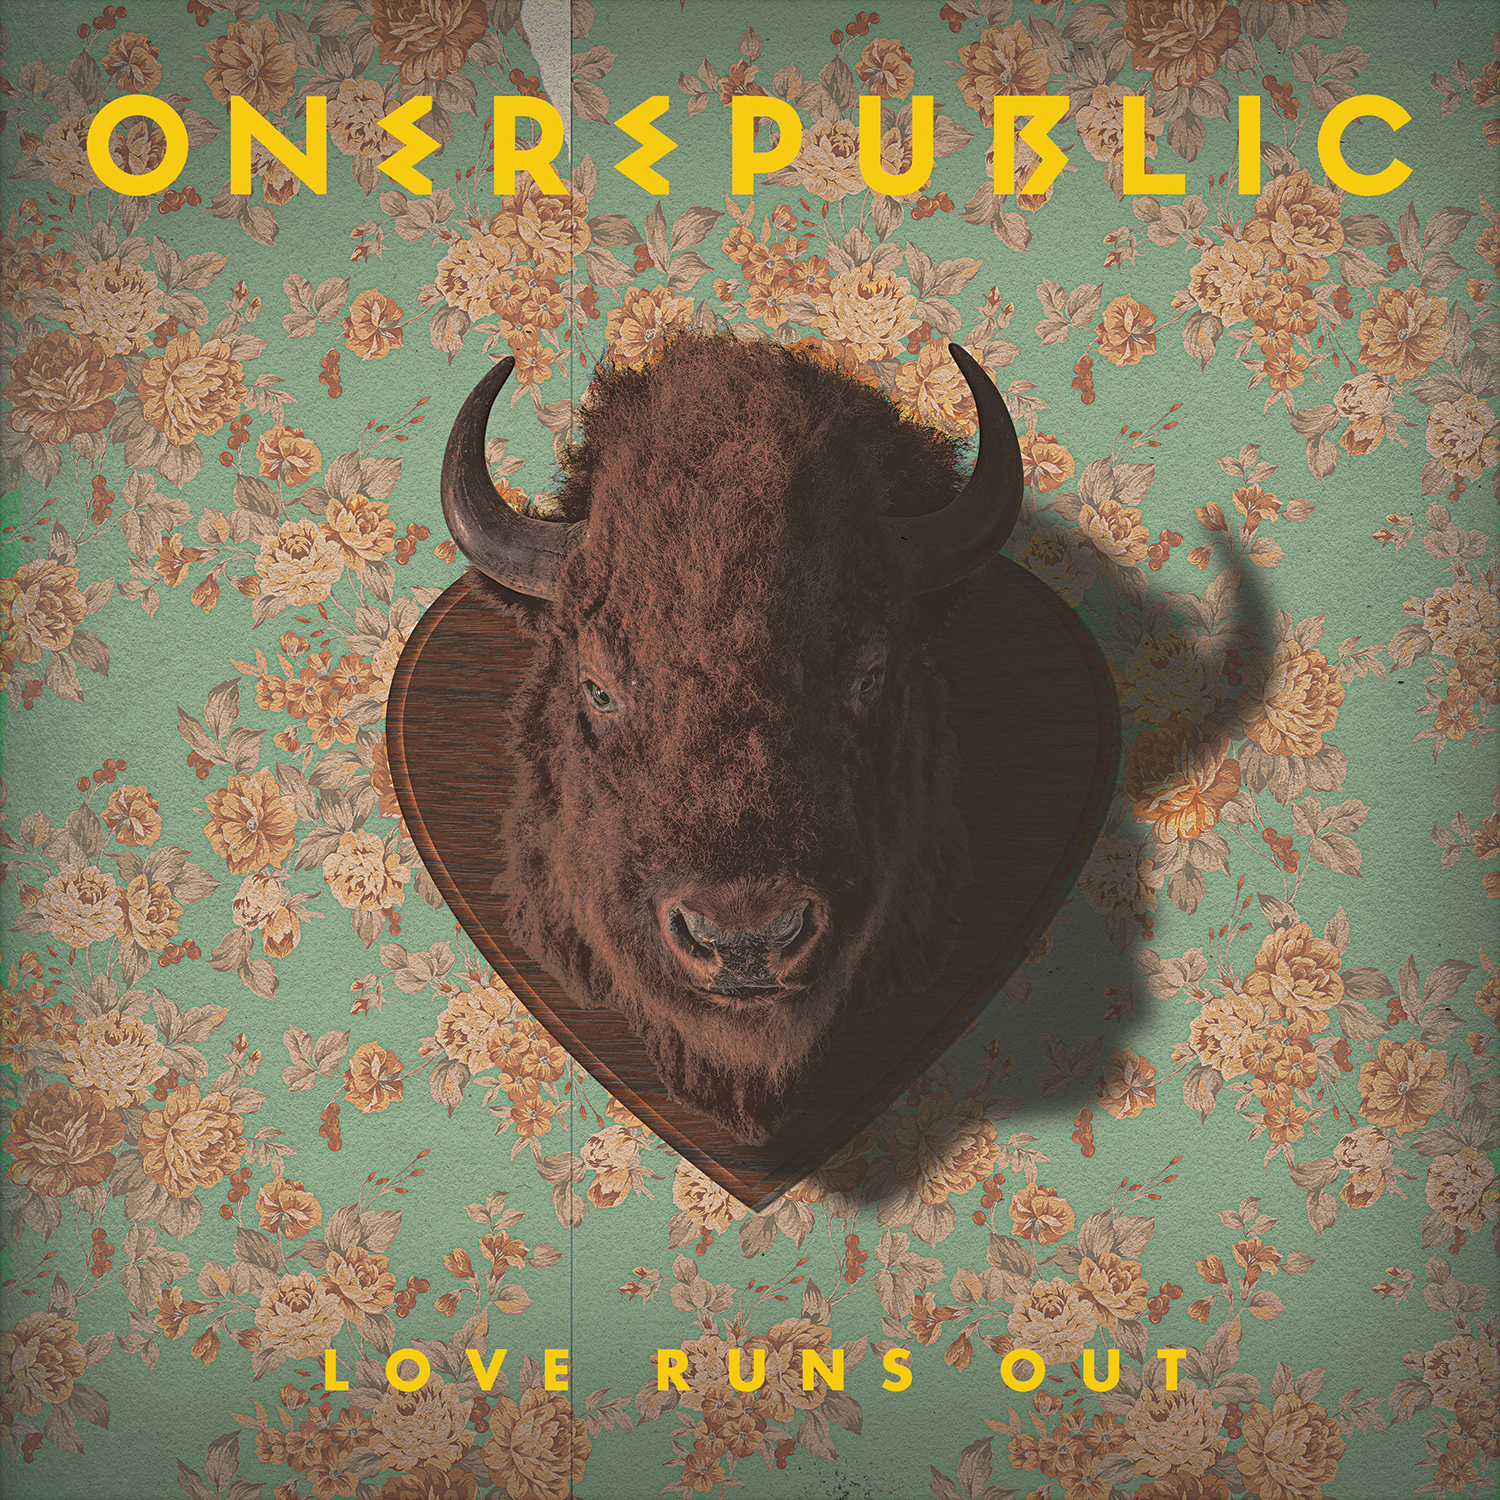 alelirik OneRepublic - Love Runs Out.